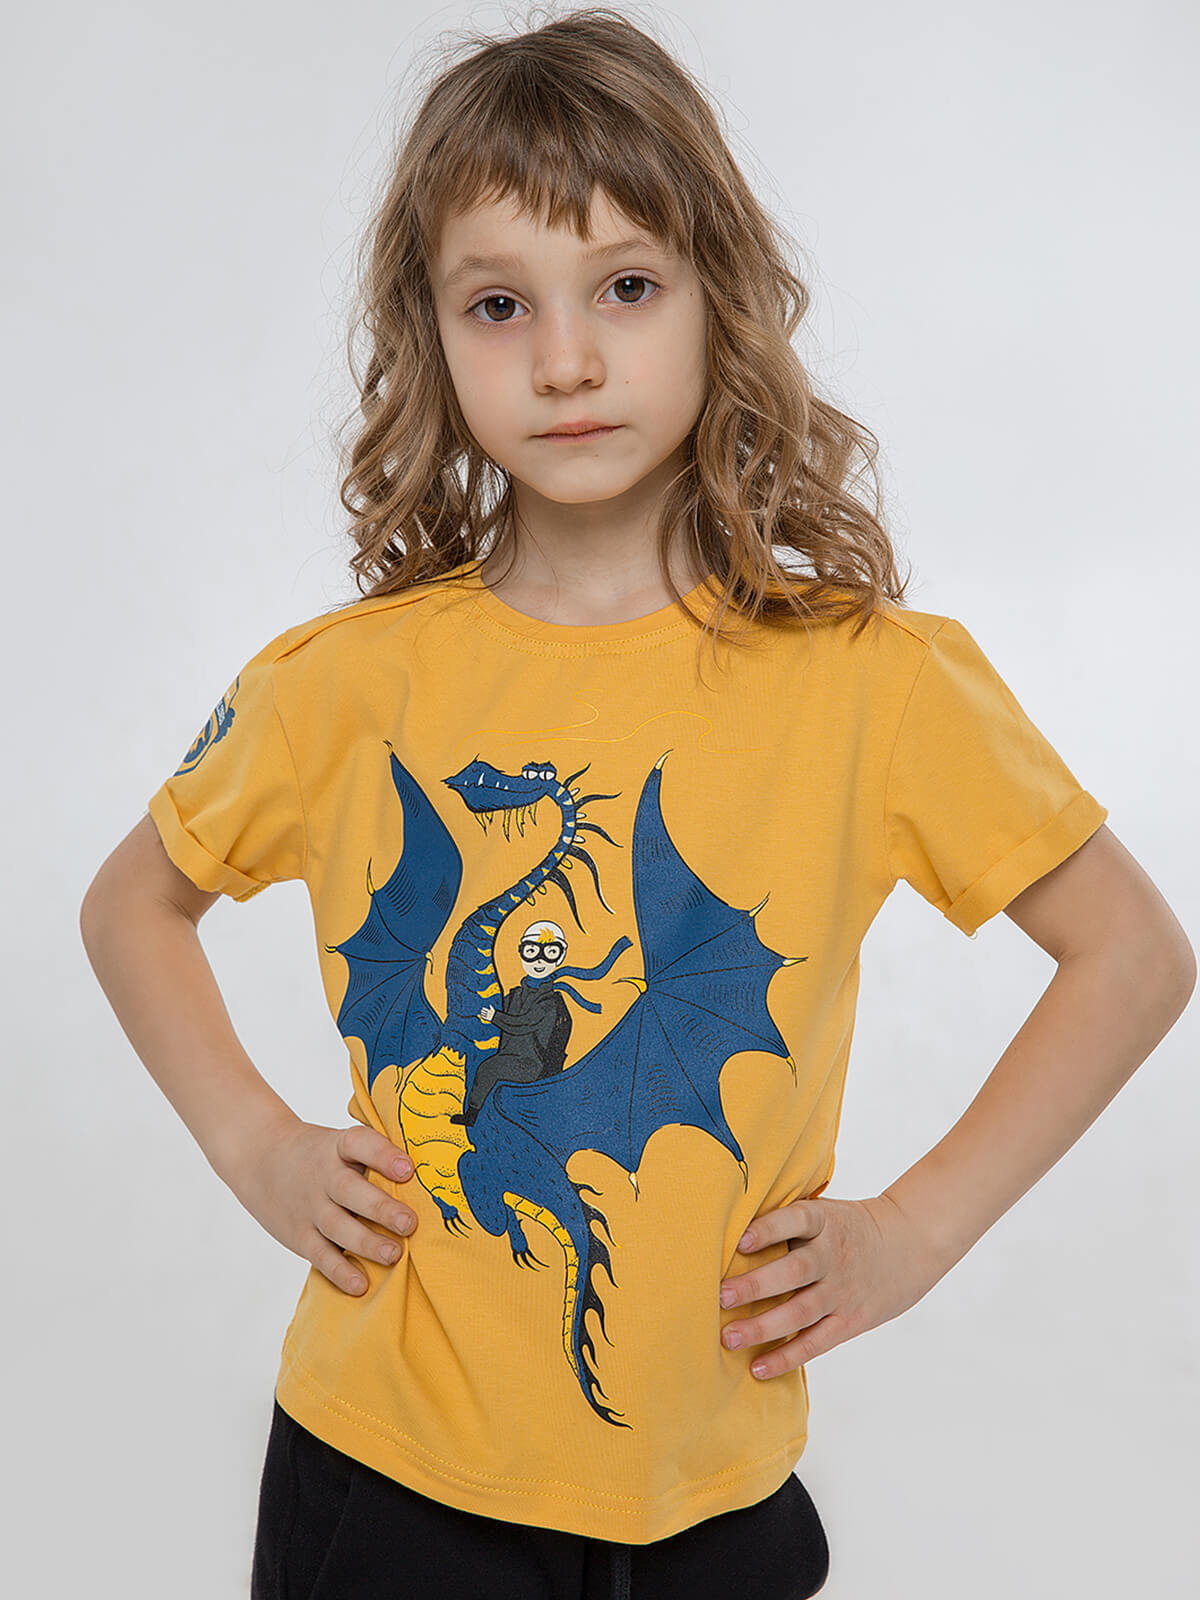 Kids T-Shirt Dragon. Color yellow. T-shirt: unisex, well suited for both boys and girls.